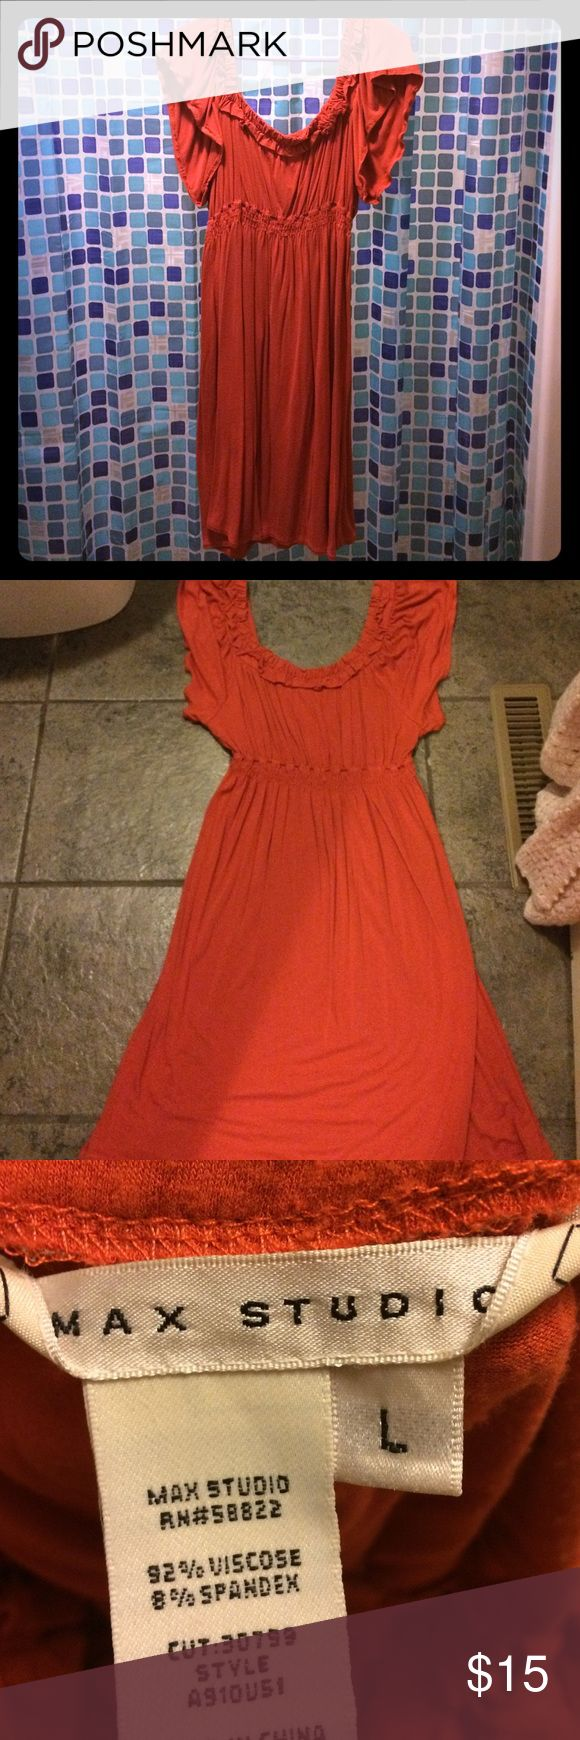 Burnt orange country chic dress EUC worn once. Pretty burnt orange dress. Has a country chic vibe to it and it looks stunning with boots. If you have any questions feel free to ask. Max Studio Dresses Midi